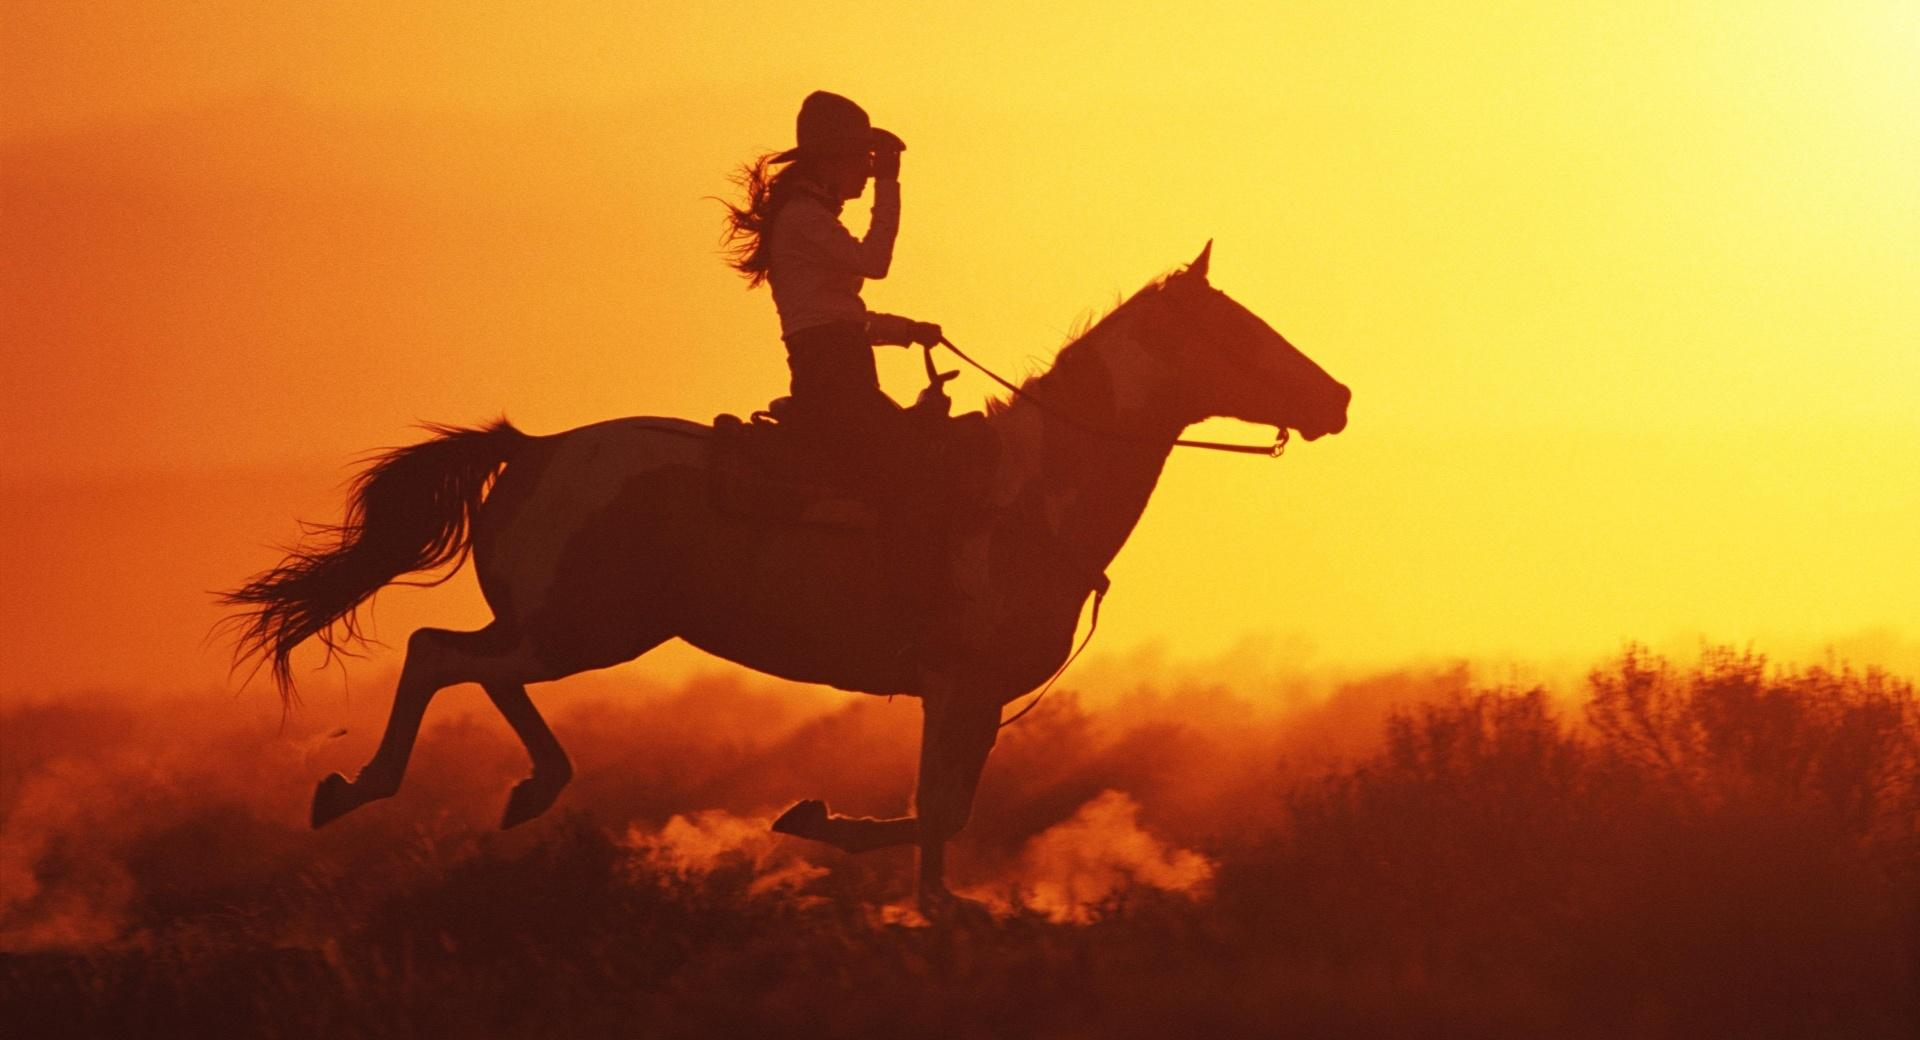 Girl On Horse wallpapers HD quality